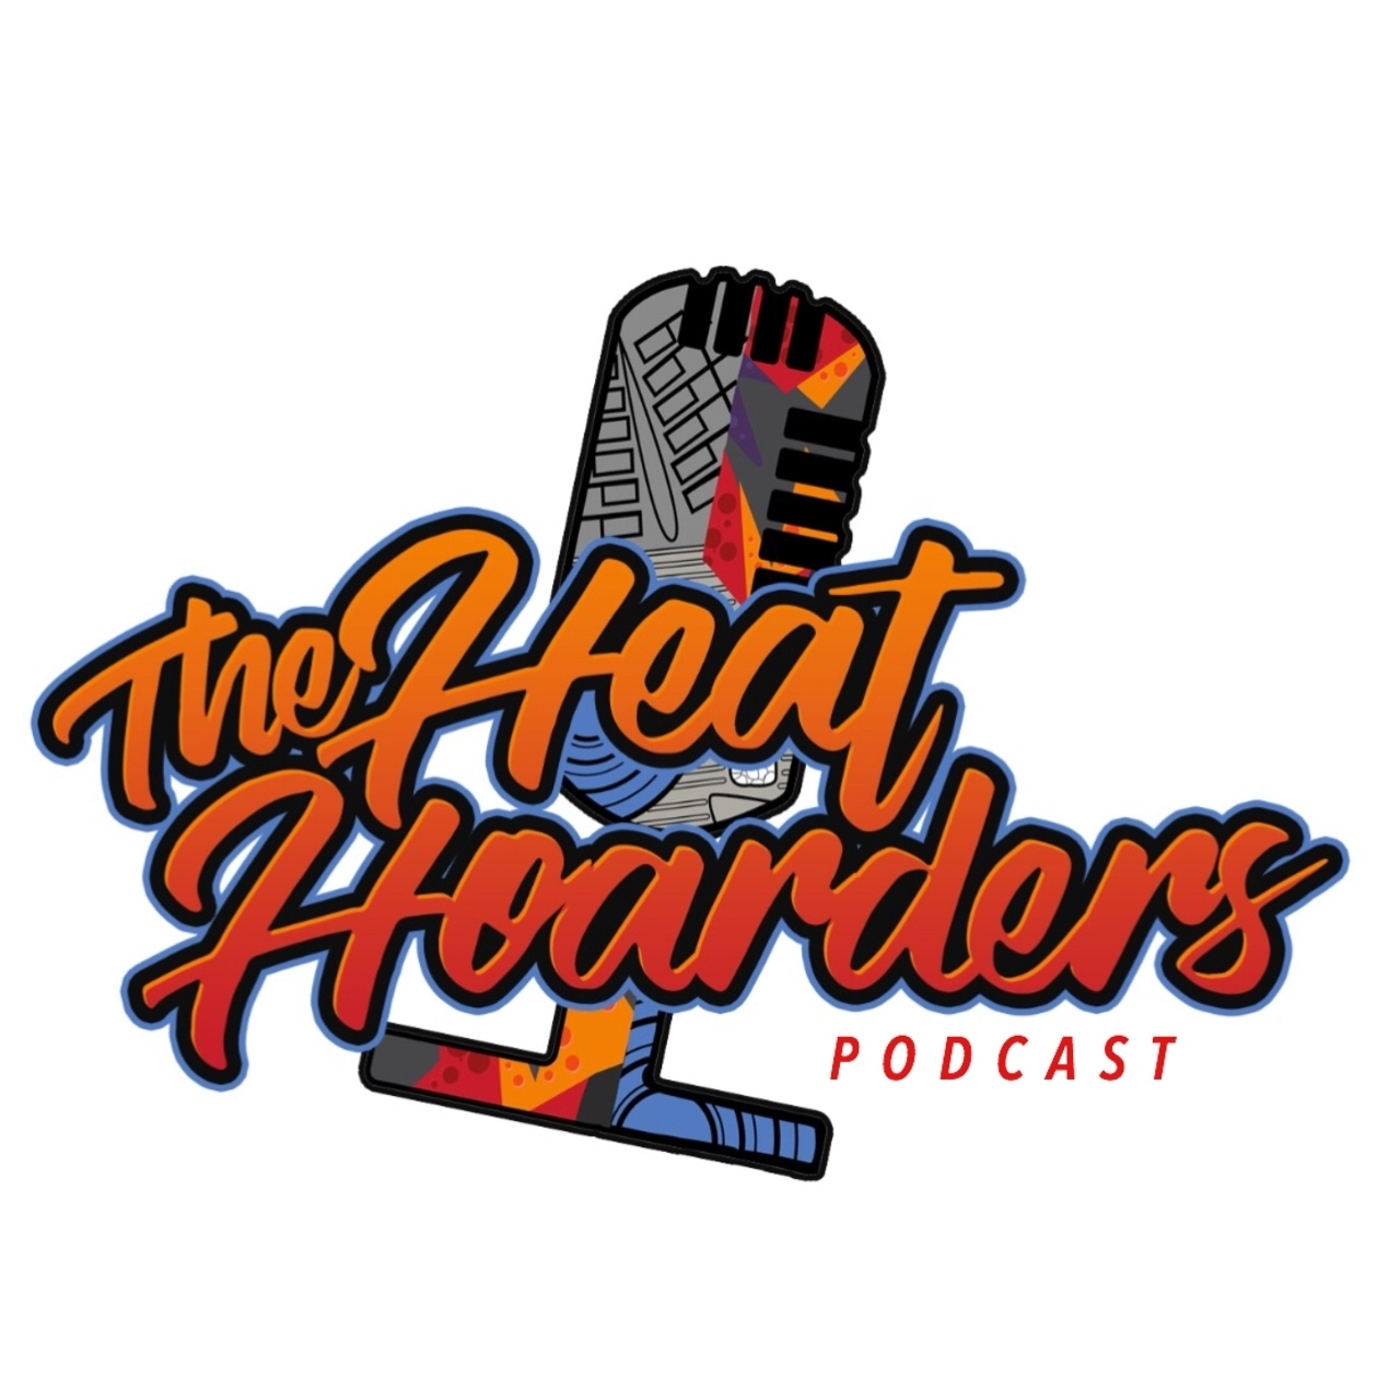 9c3e6204189 The Heat Hoarders Podcast by The Heat Hoarders on Apple Podcasts